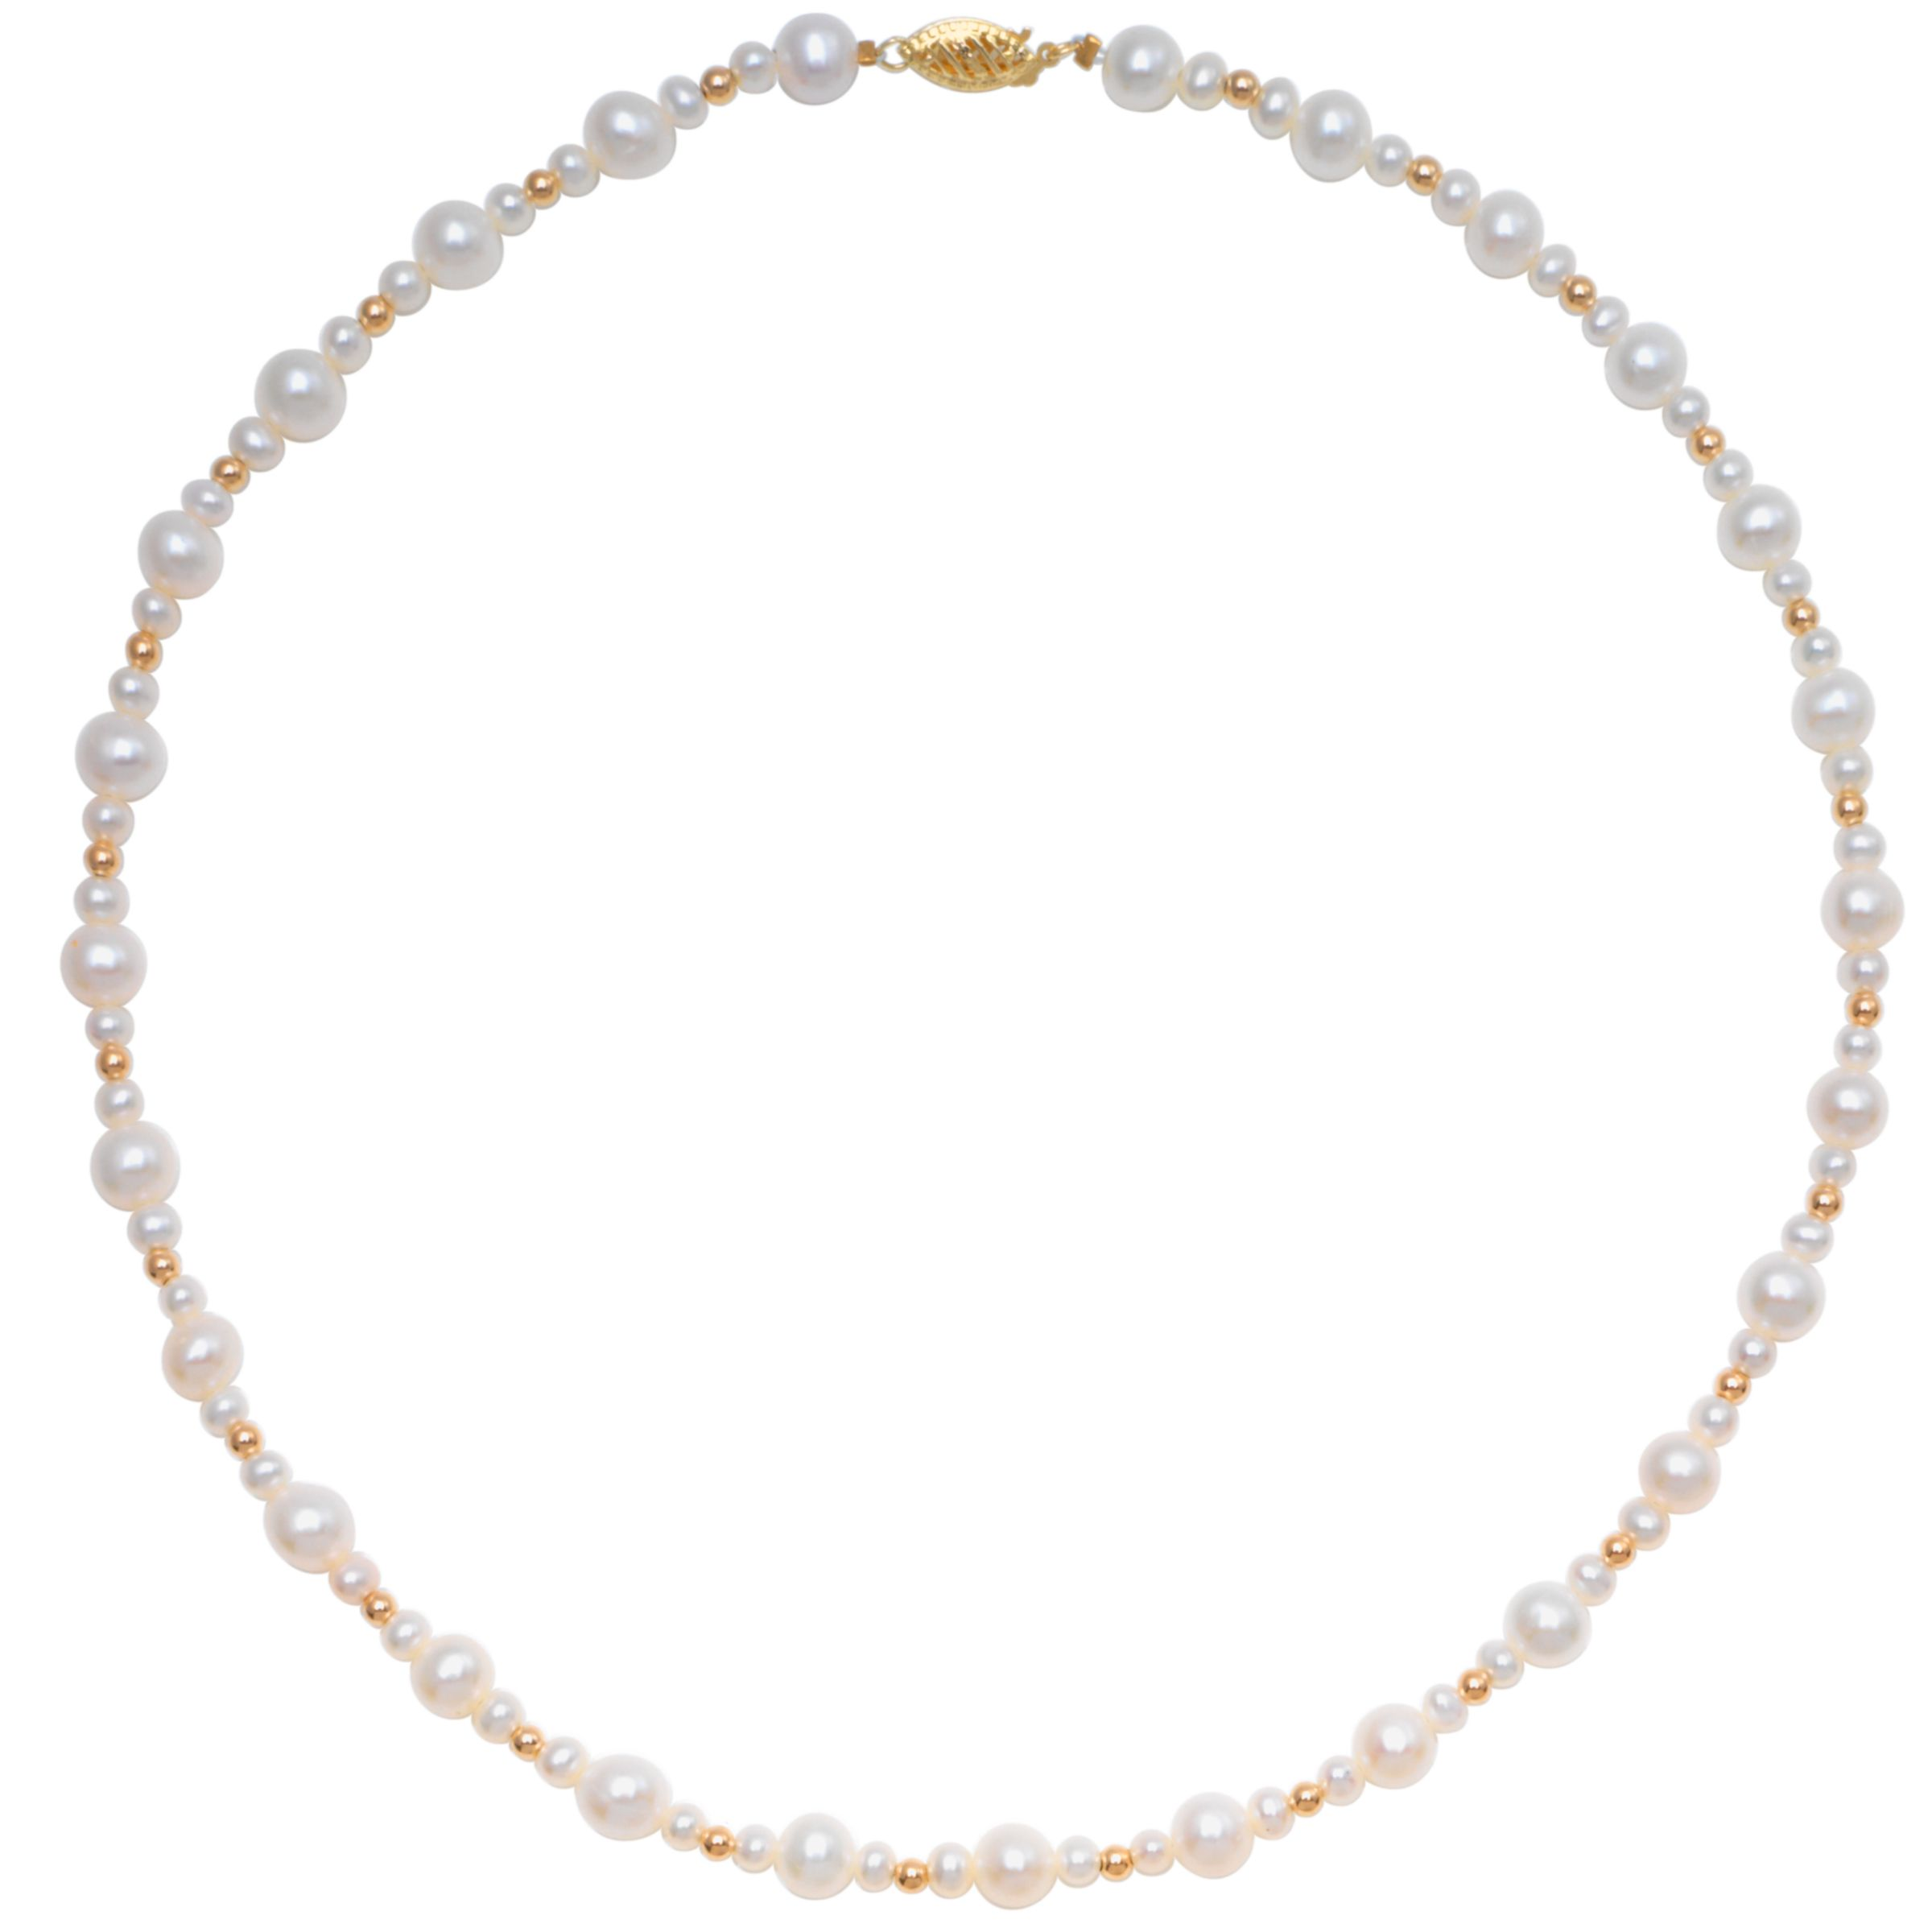 "Freshwater White Pearl and Gold Bead 18"" Necklace with Gold Clasp at JohnLewis"